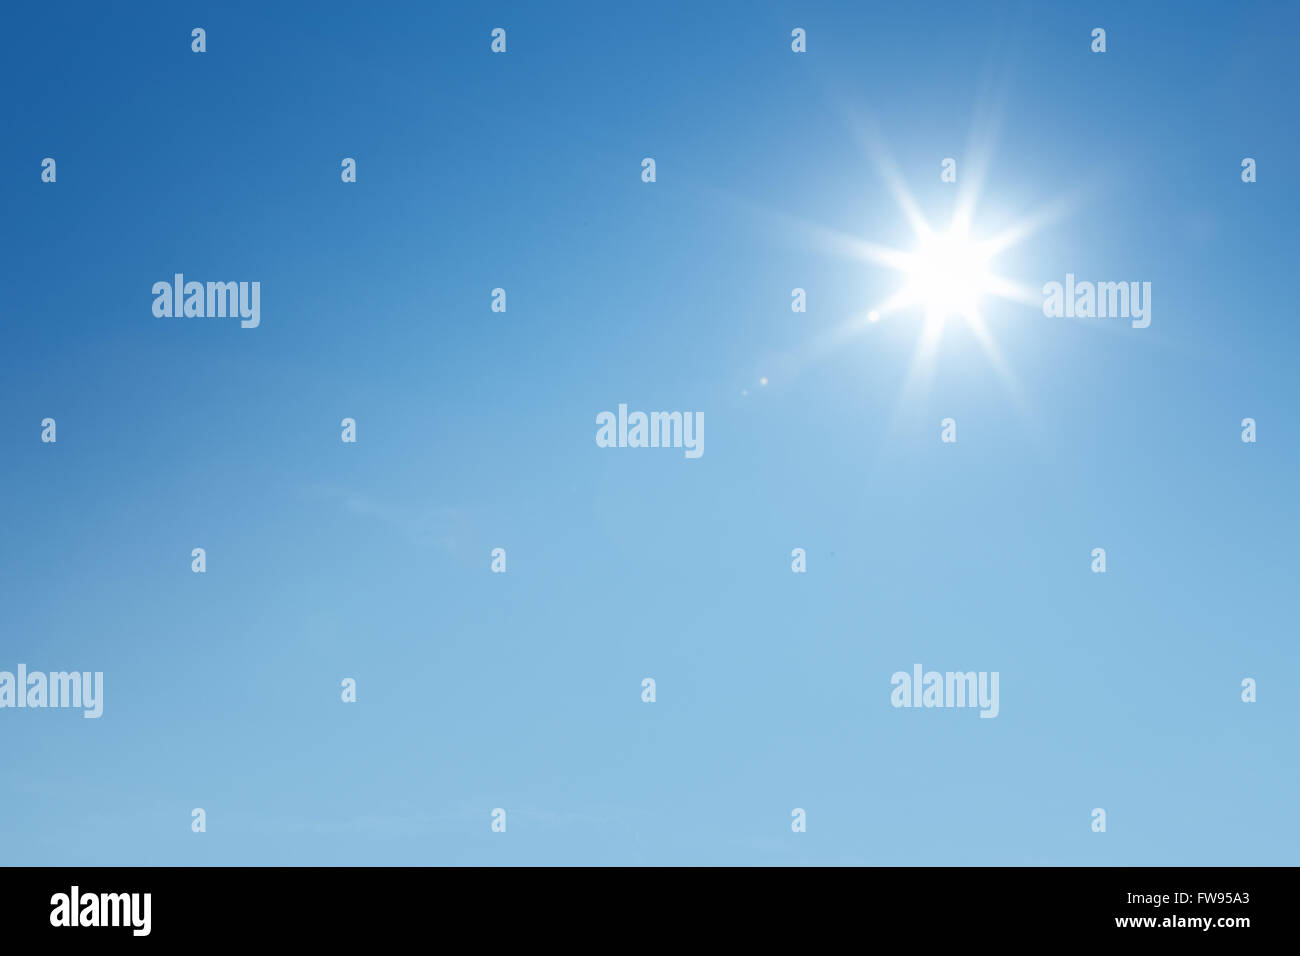 The sun shines bright in the daytime in summer. - Stock Image